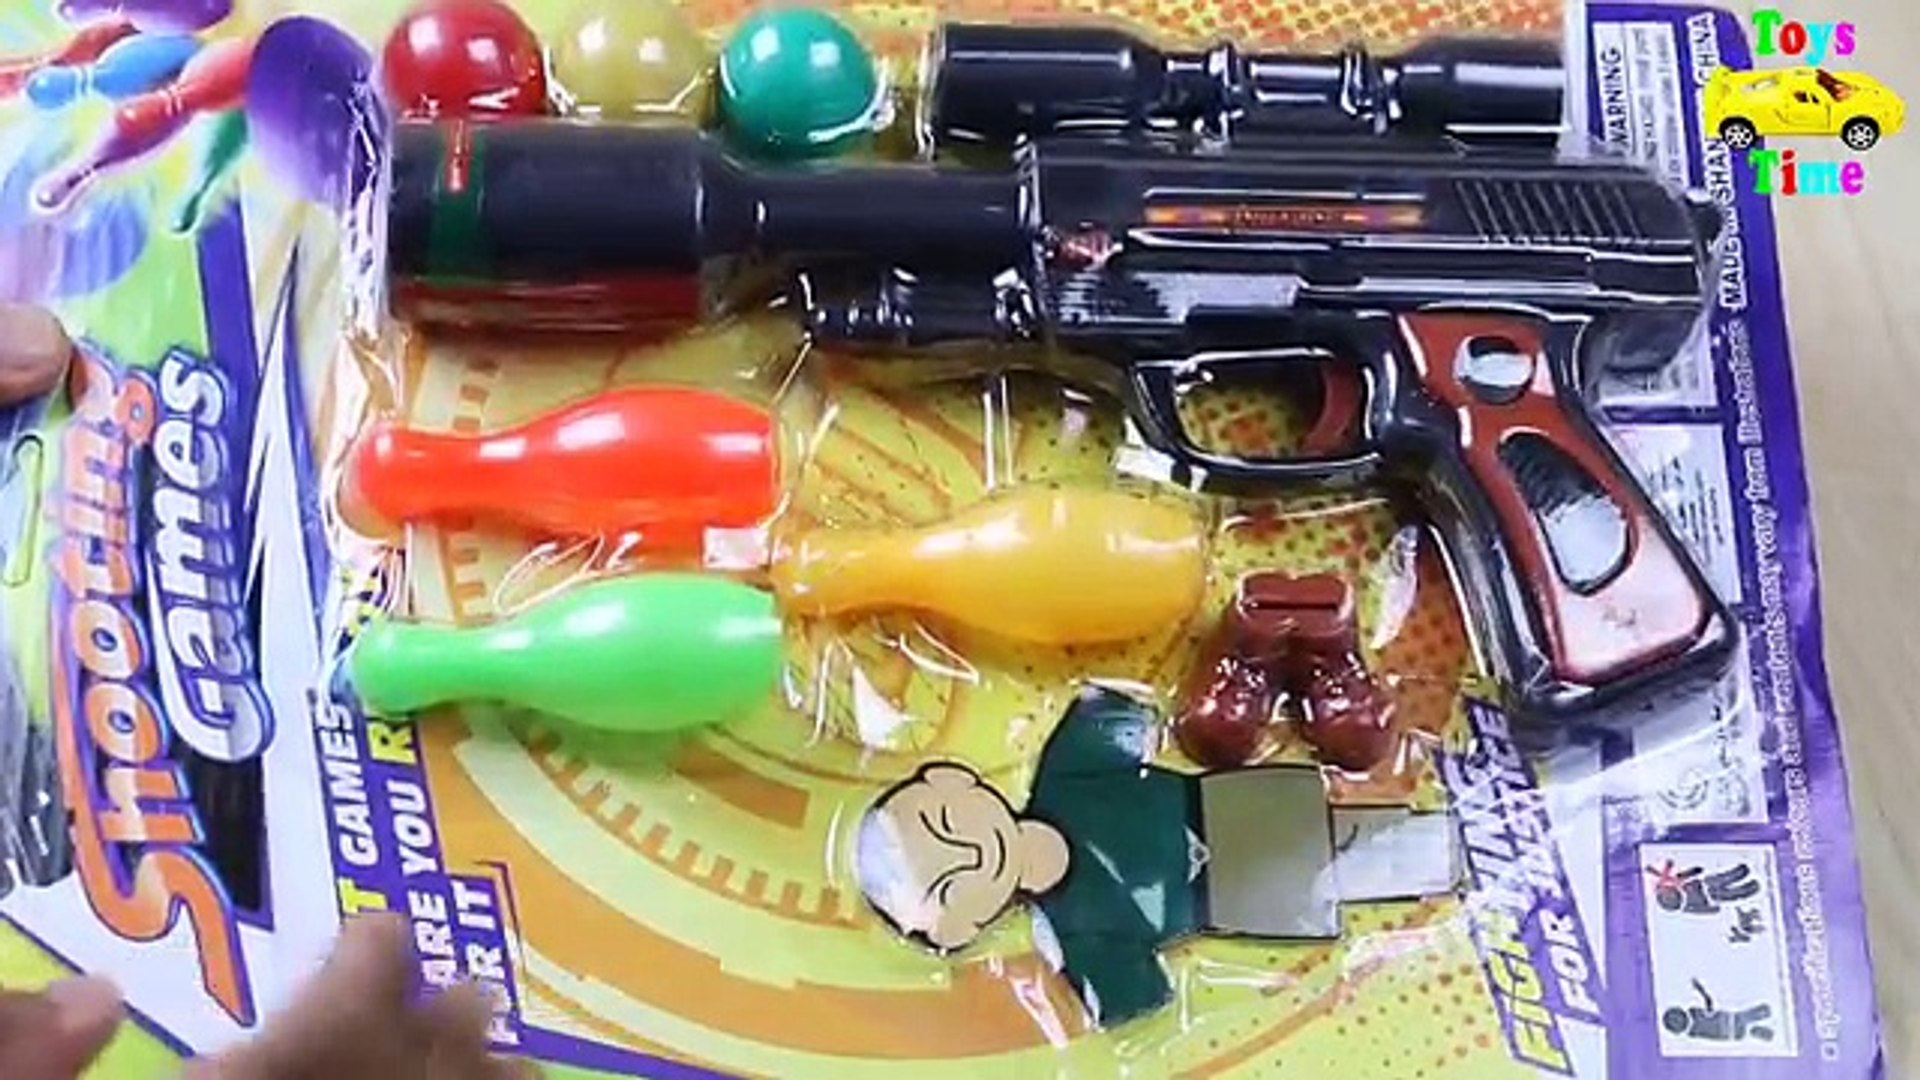 Powerful Toy Gun for Kids Ball Bullet Gun Shooting Games Unboxing Toy Pistol with Target and Bullets